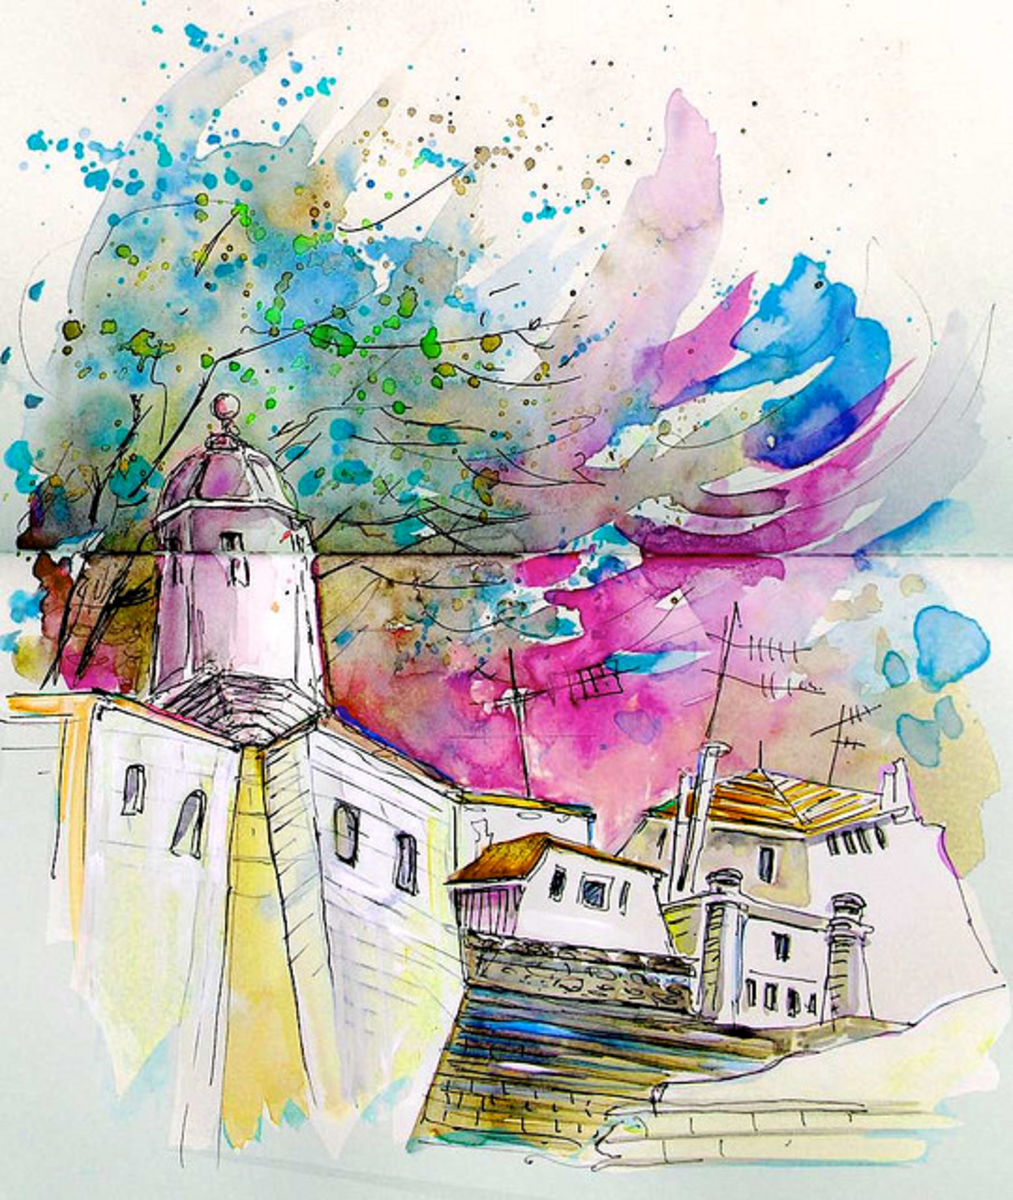 Gorgeous watercolour scene - so much movement and life!